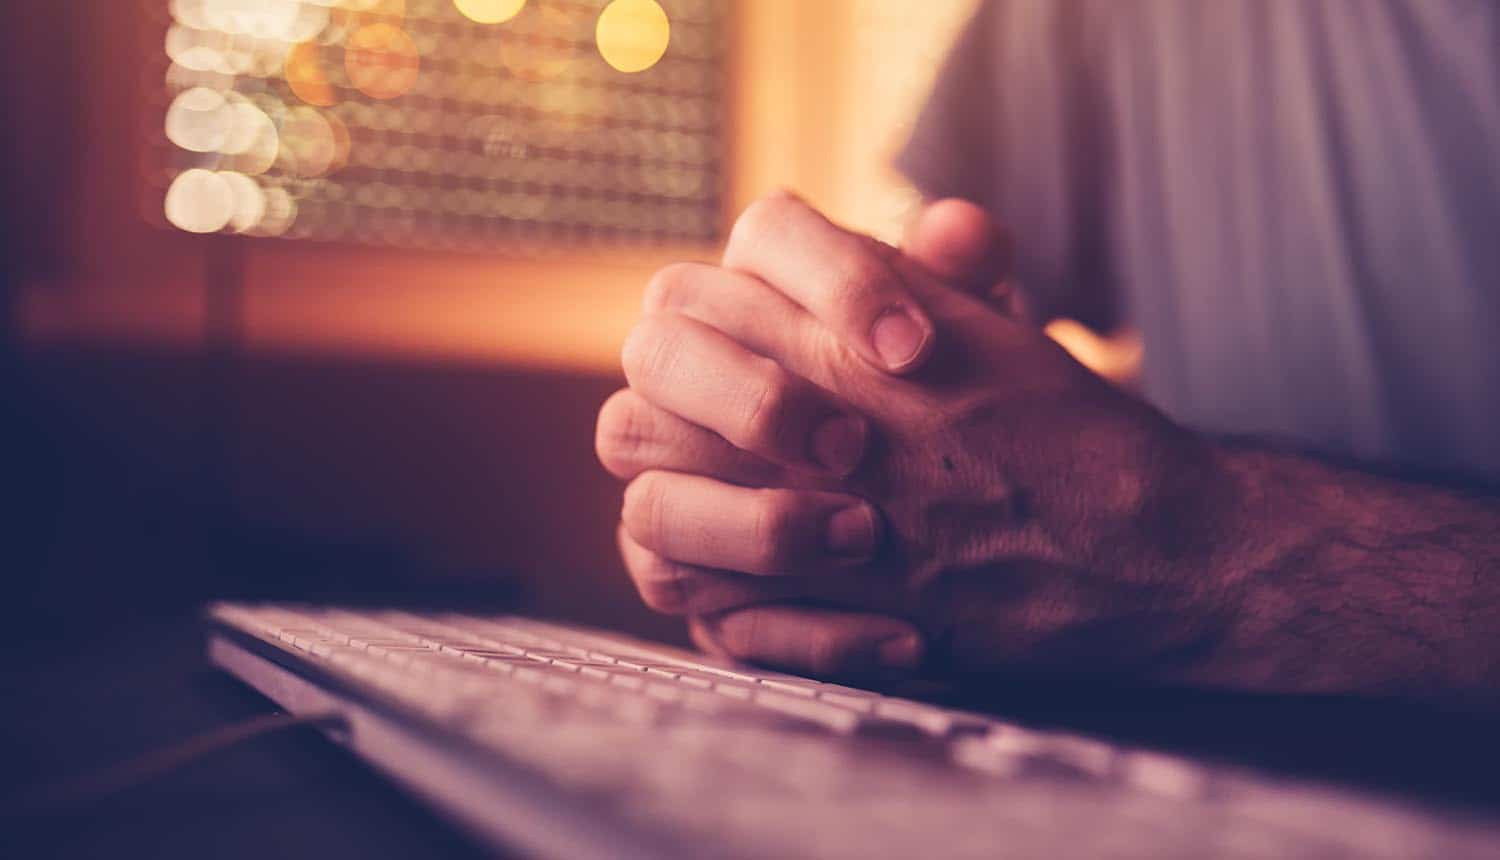 Man praying in front of computer showing the survey on remote workers adhering to company's security protocols